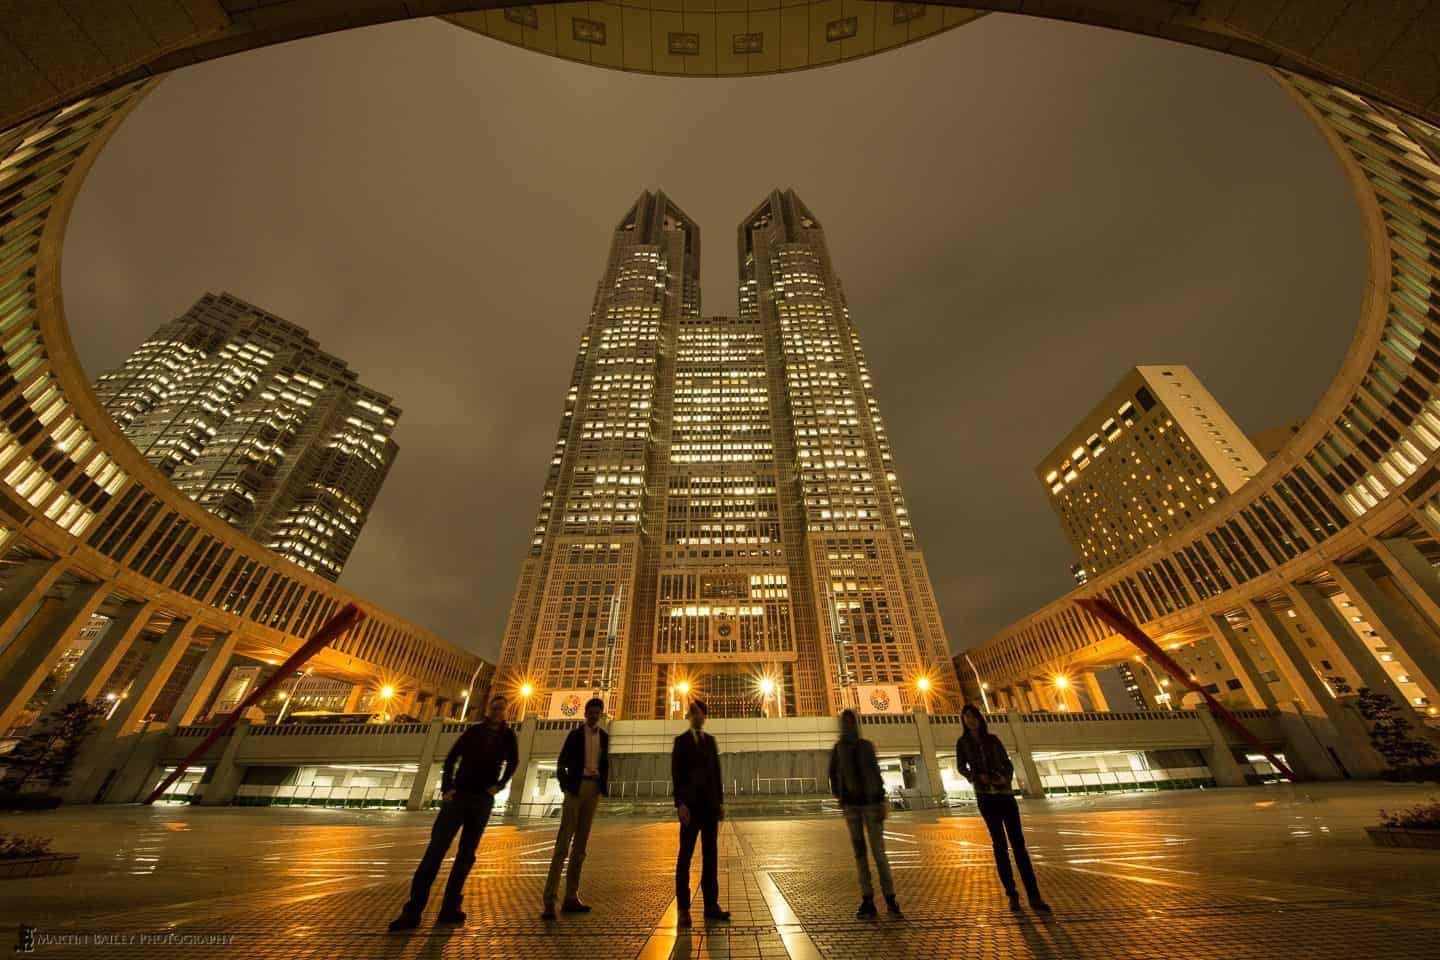 With Friend's at Tokyo Metropolitan Government Building